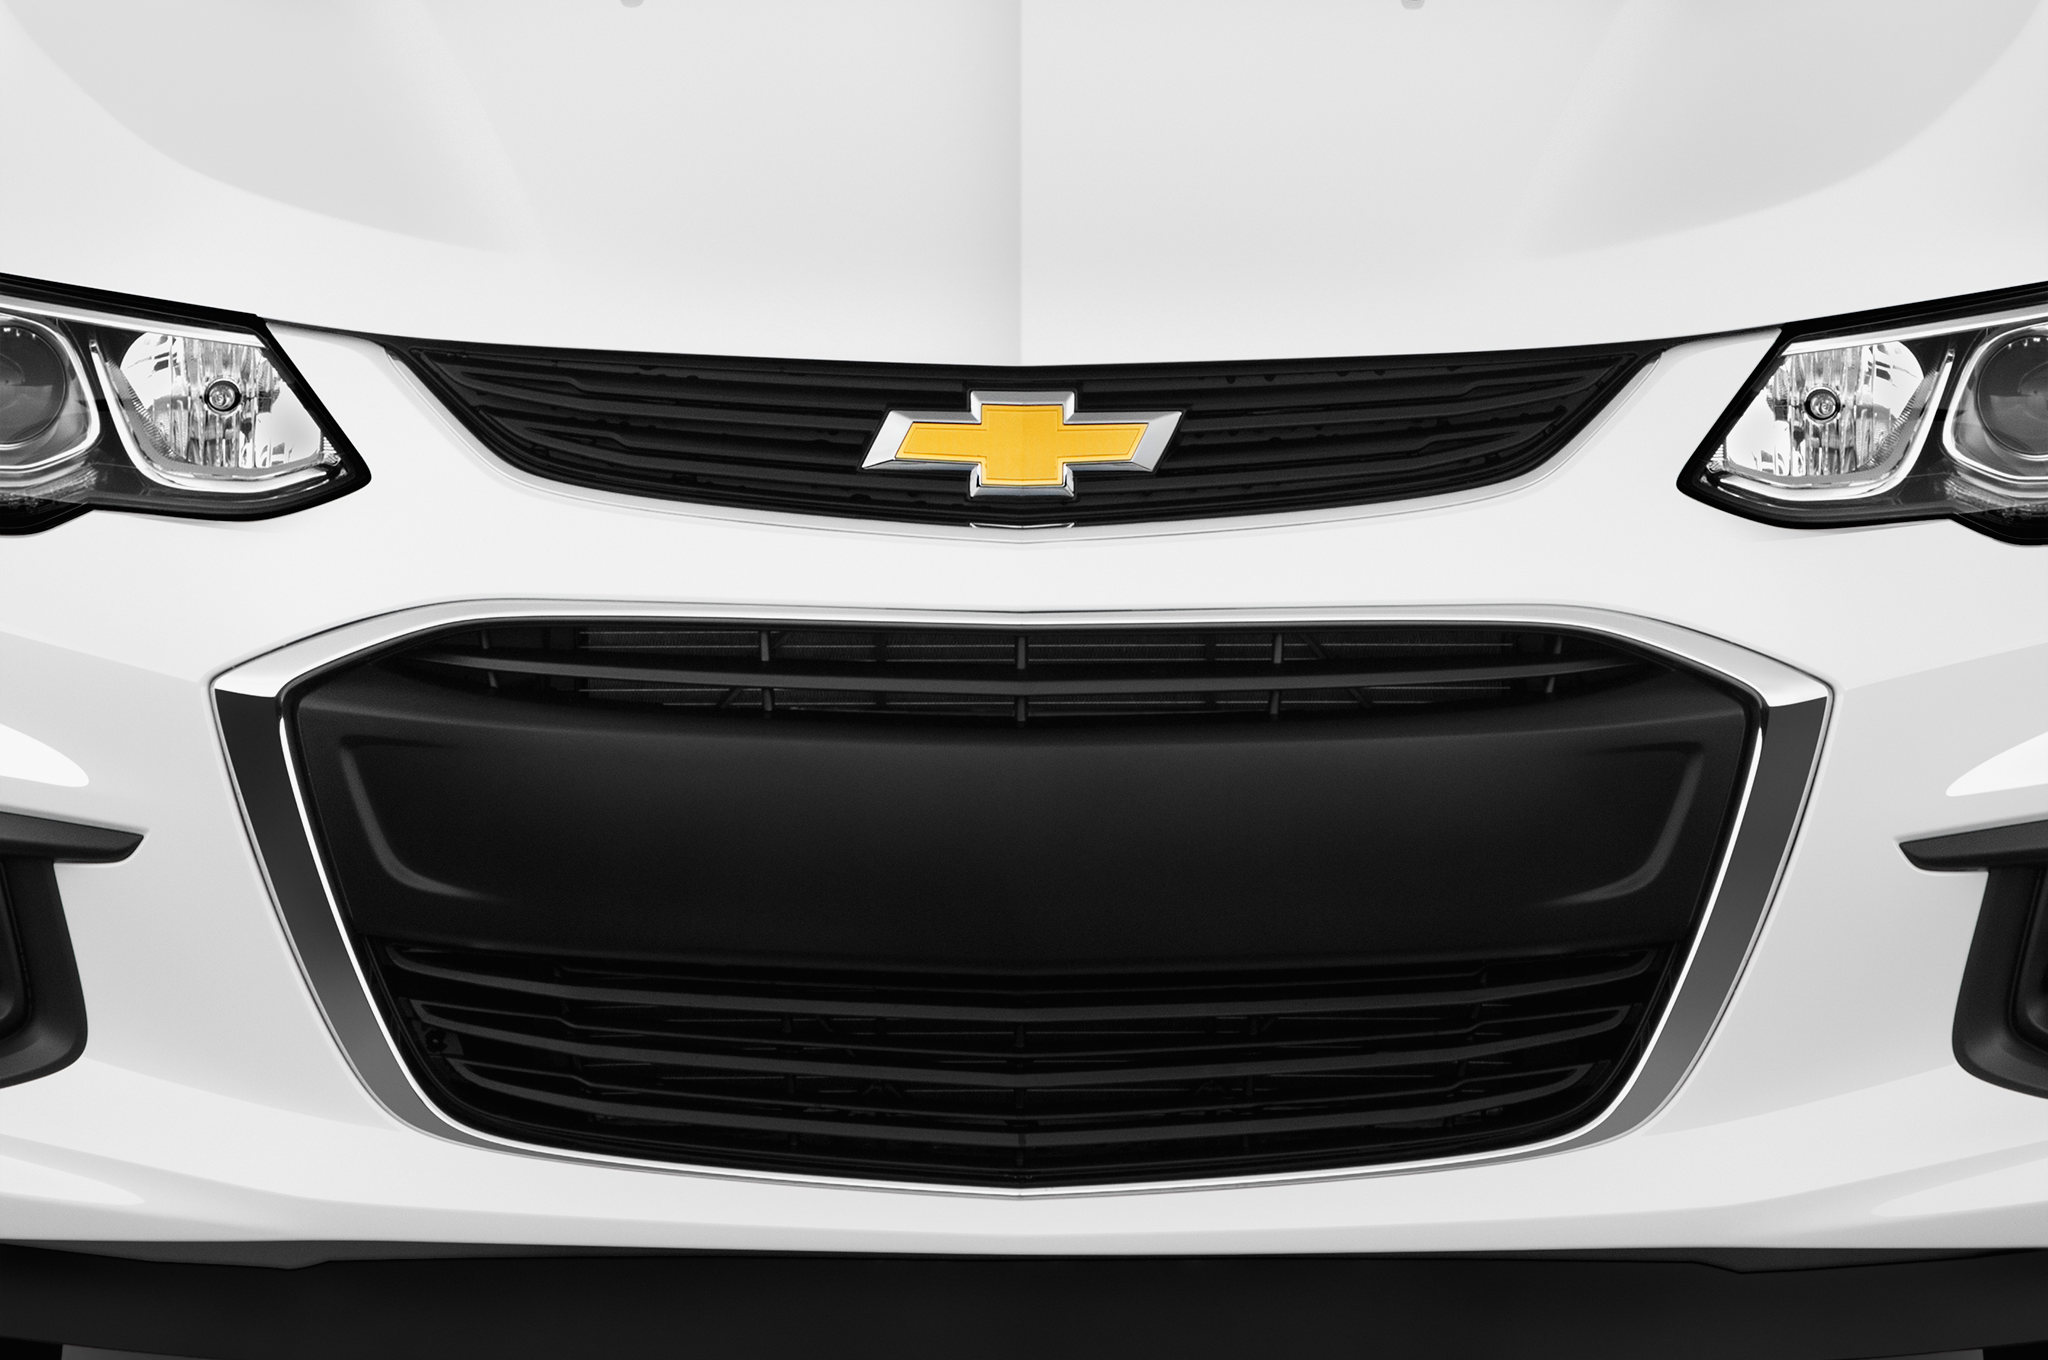 Chevrolet Sonic Owners Manual: Vehicle Data Recording and Privacy